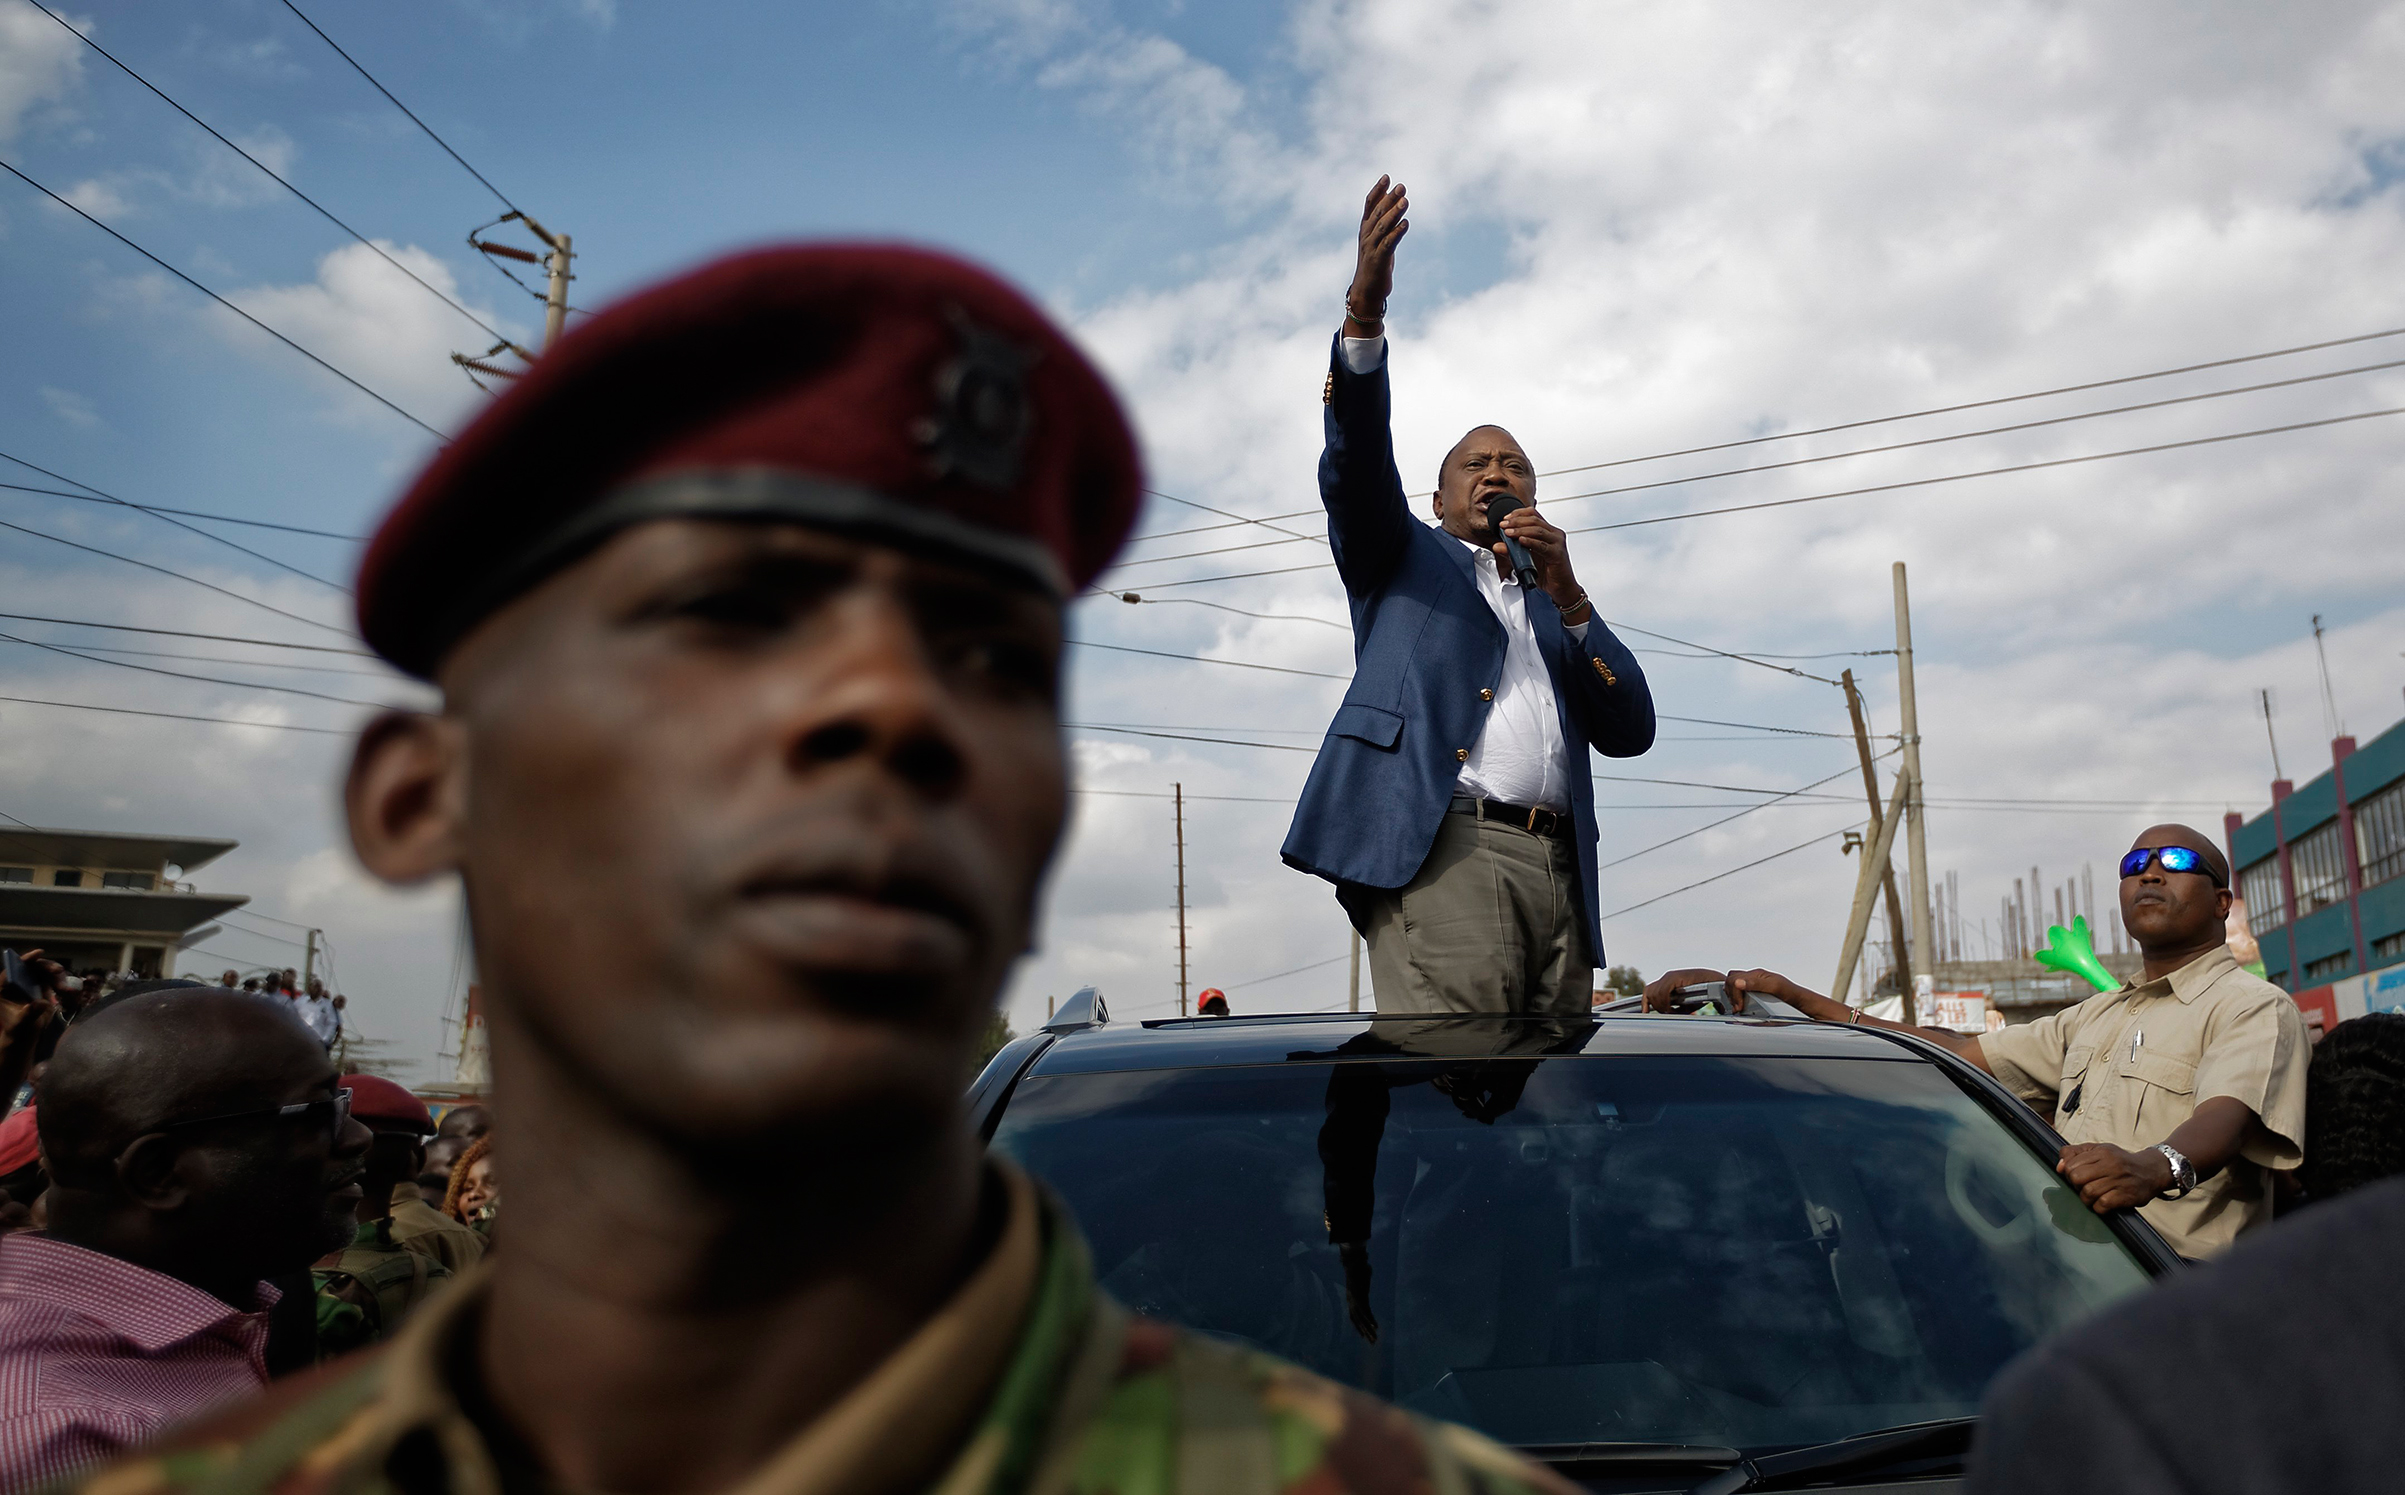 A decades-old assault on the rule of law has left Kenya a fractious legacy